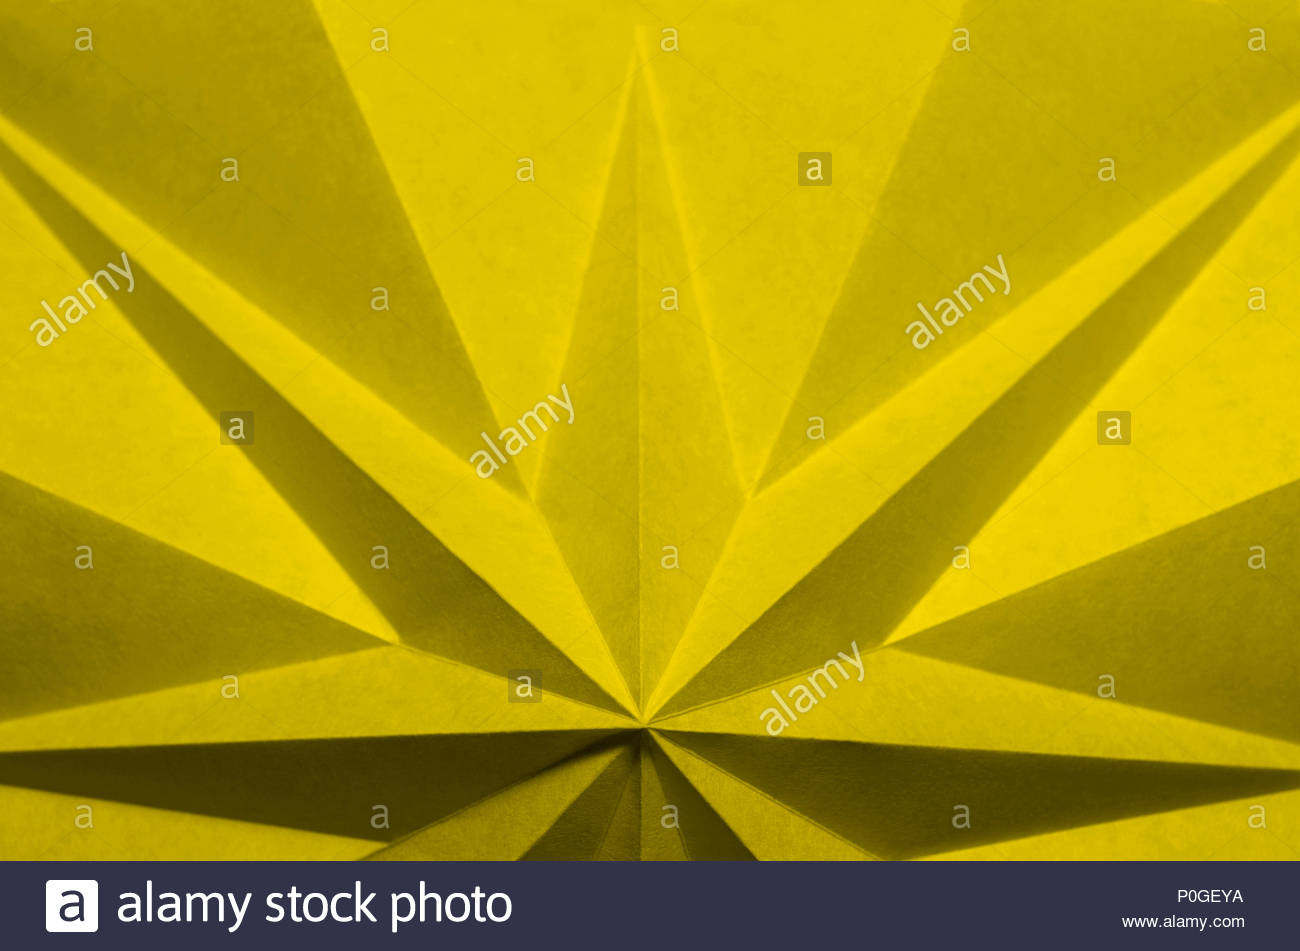 Yellow Origami Based Abstract Background Wallpaper Pantone 13 0646 Meadowlark 2018 Color Of The Year Compliment